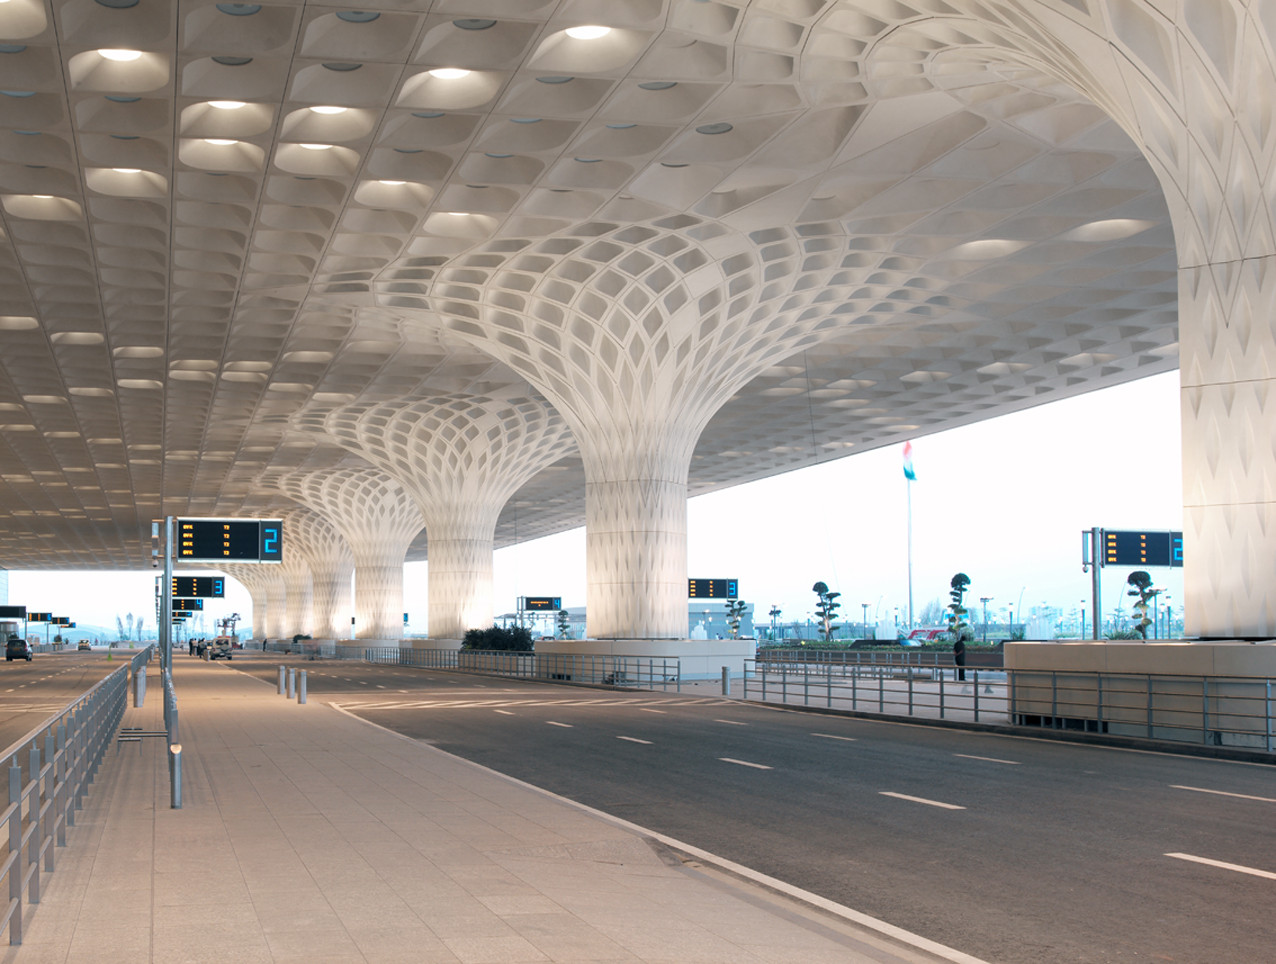 chhatrapati shivaji international airport terminal 2